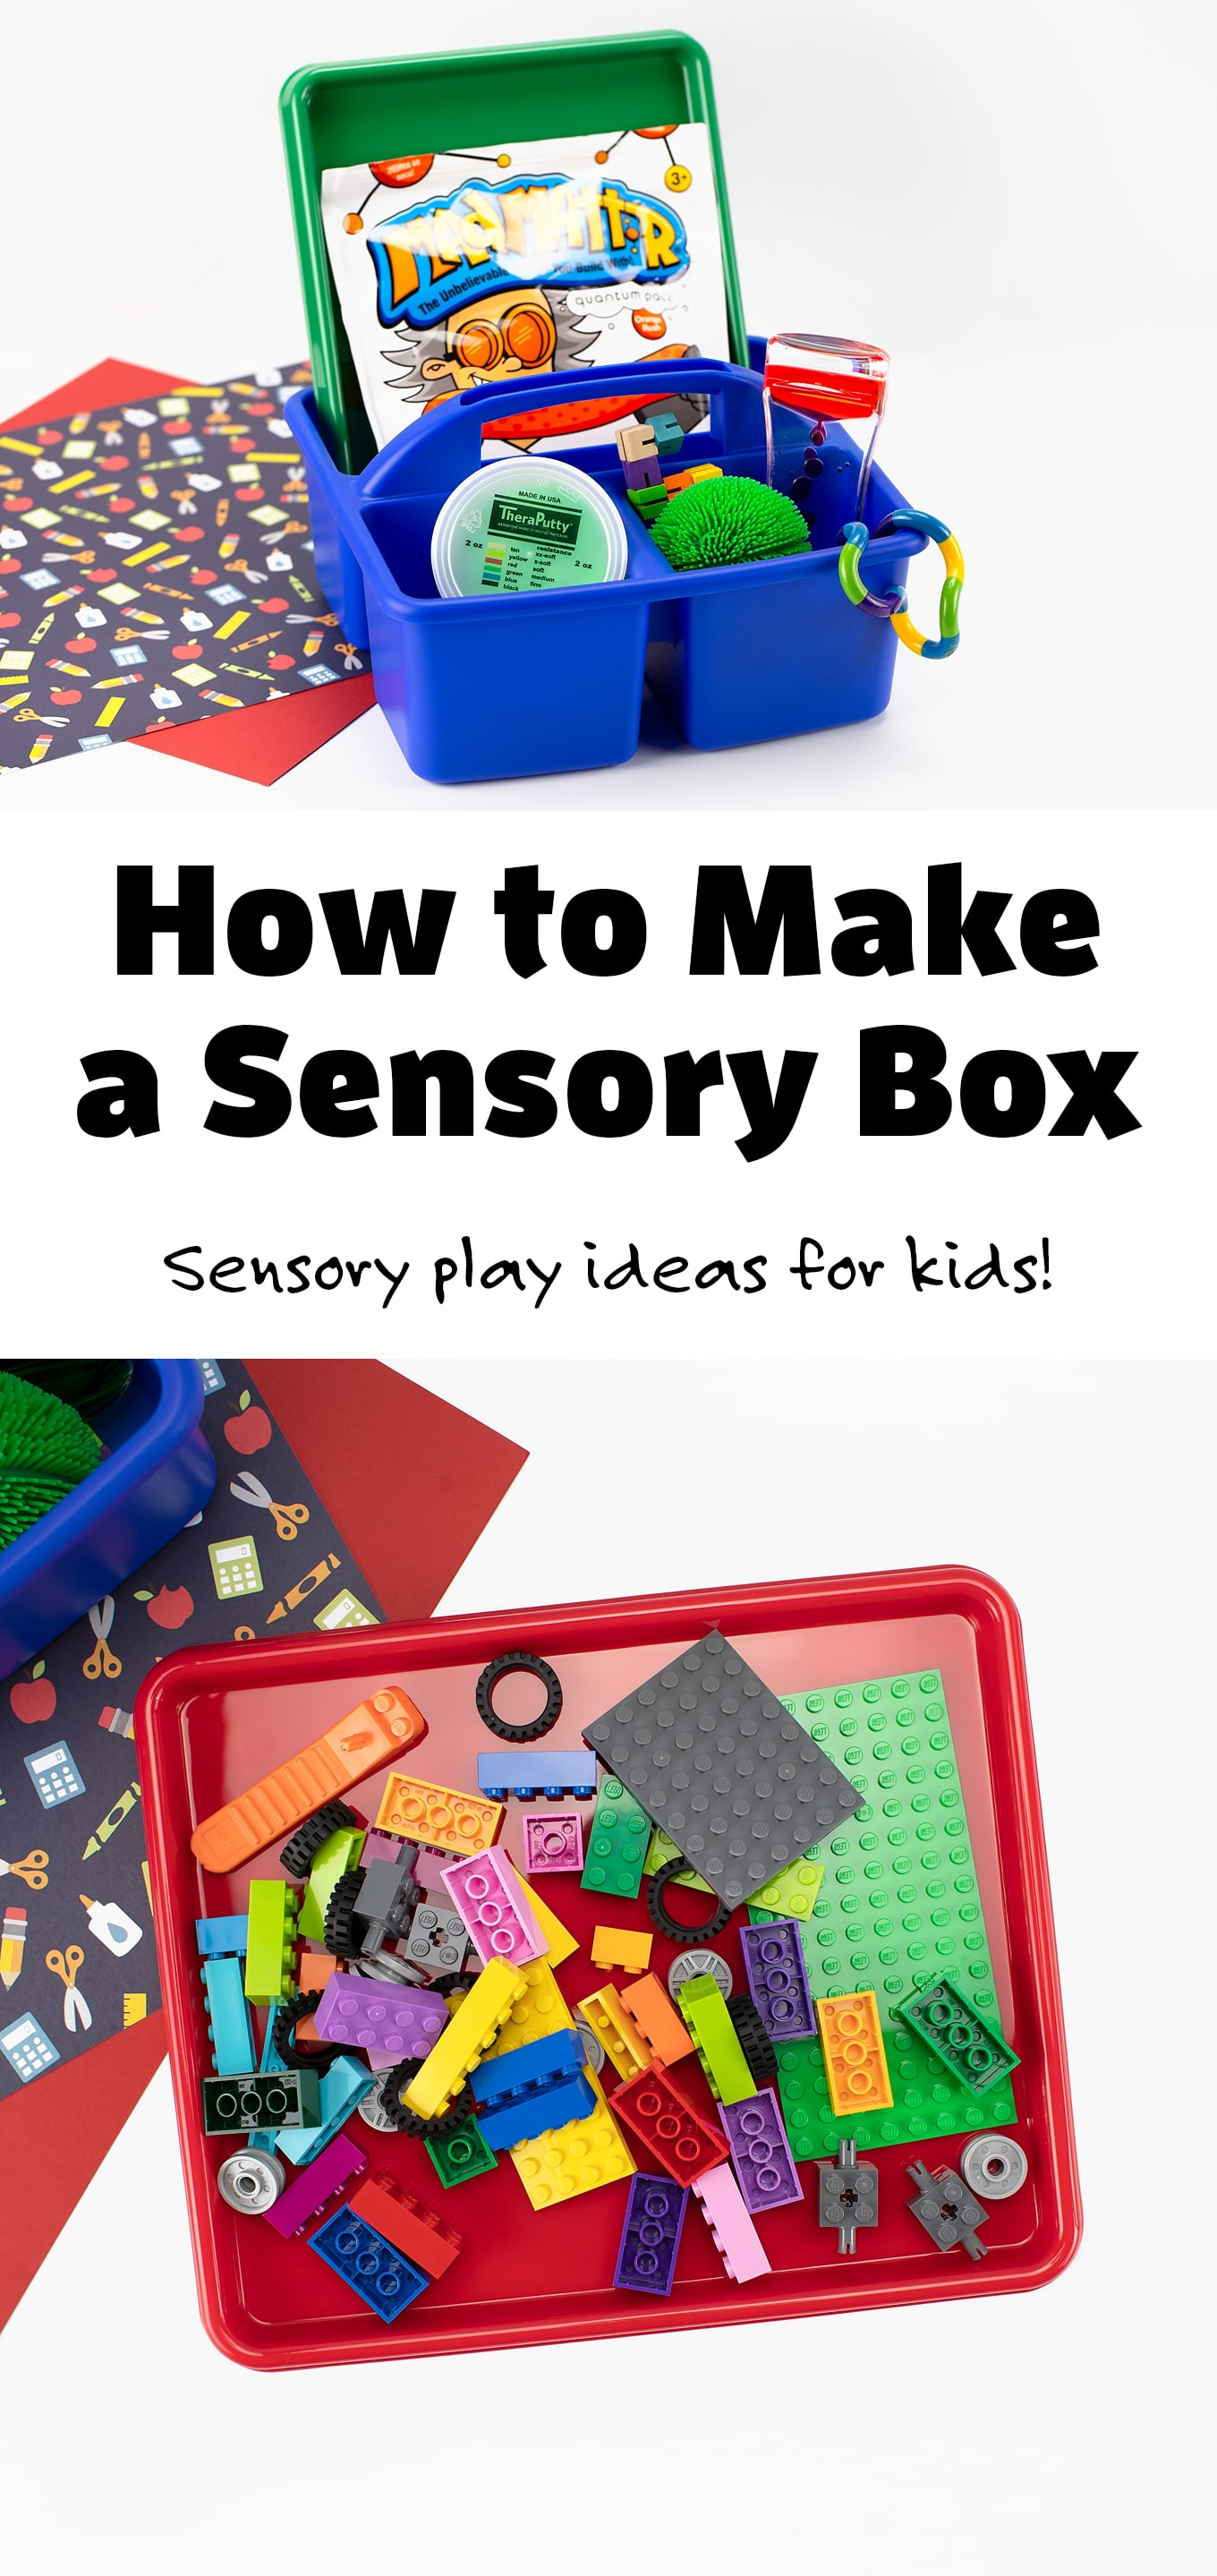 Learn how an individualizedSensory Box can help your child fulfill their sensory needs throughout their school day. #sensorybox #ideas #forkids #diy via @firefliesandmudpies